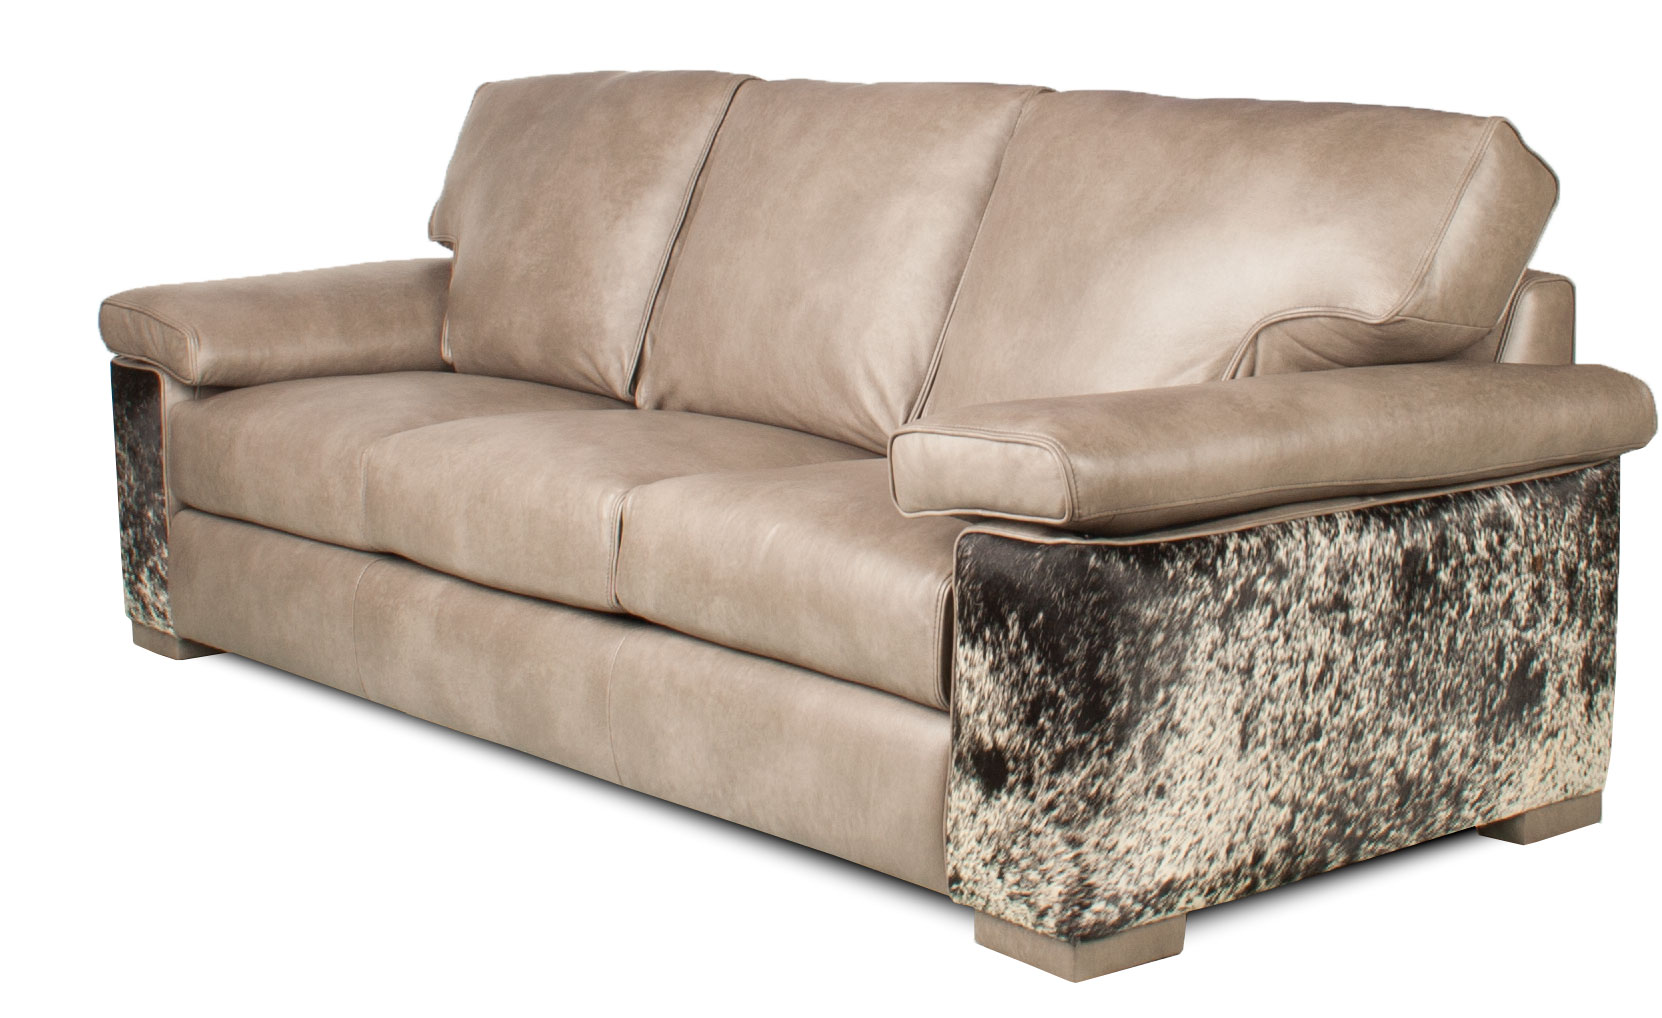 custom made leather sectional sofas chocolate sofa living room ideas couture